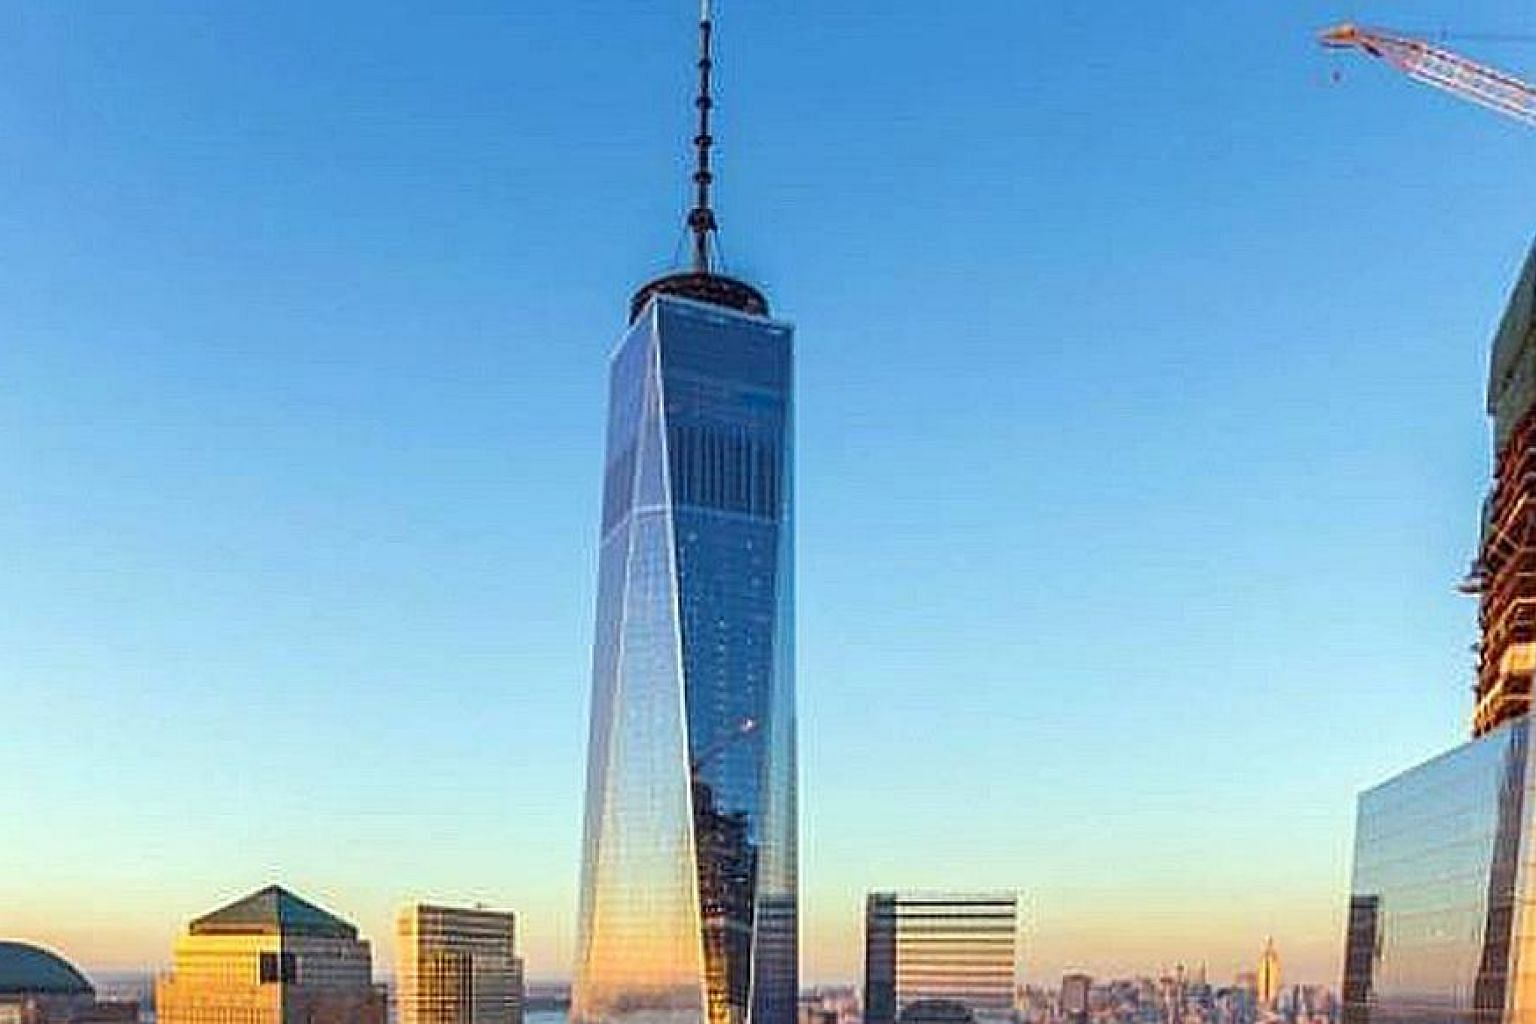 South Korea-born architect Jeehoon Park says the design of One World Trade Center (above) has similarities with a tower he designed in 1999.